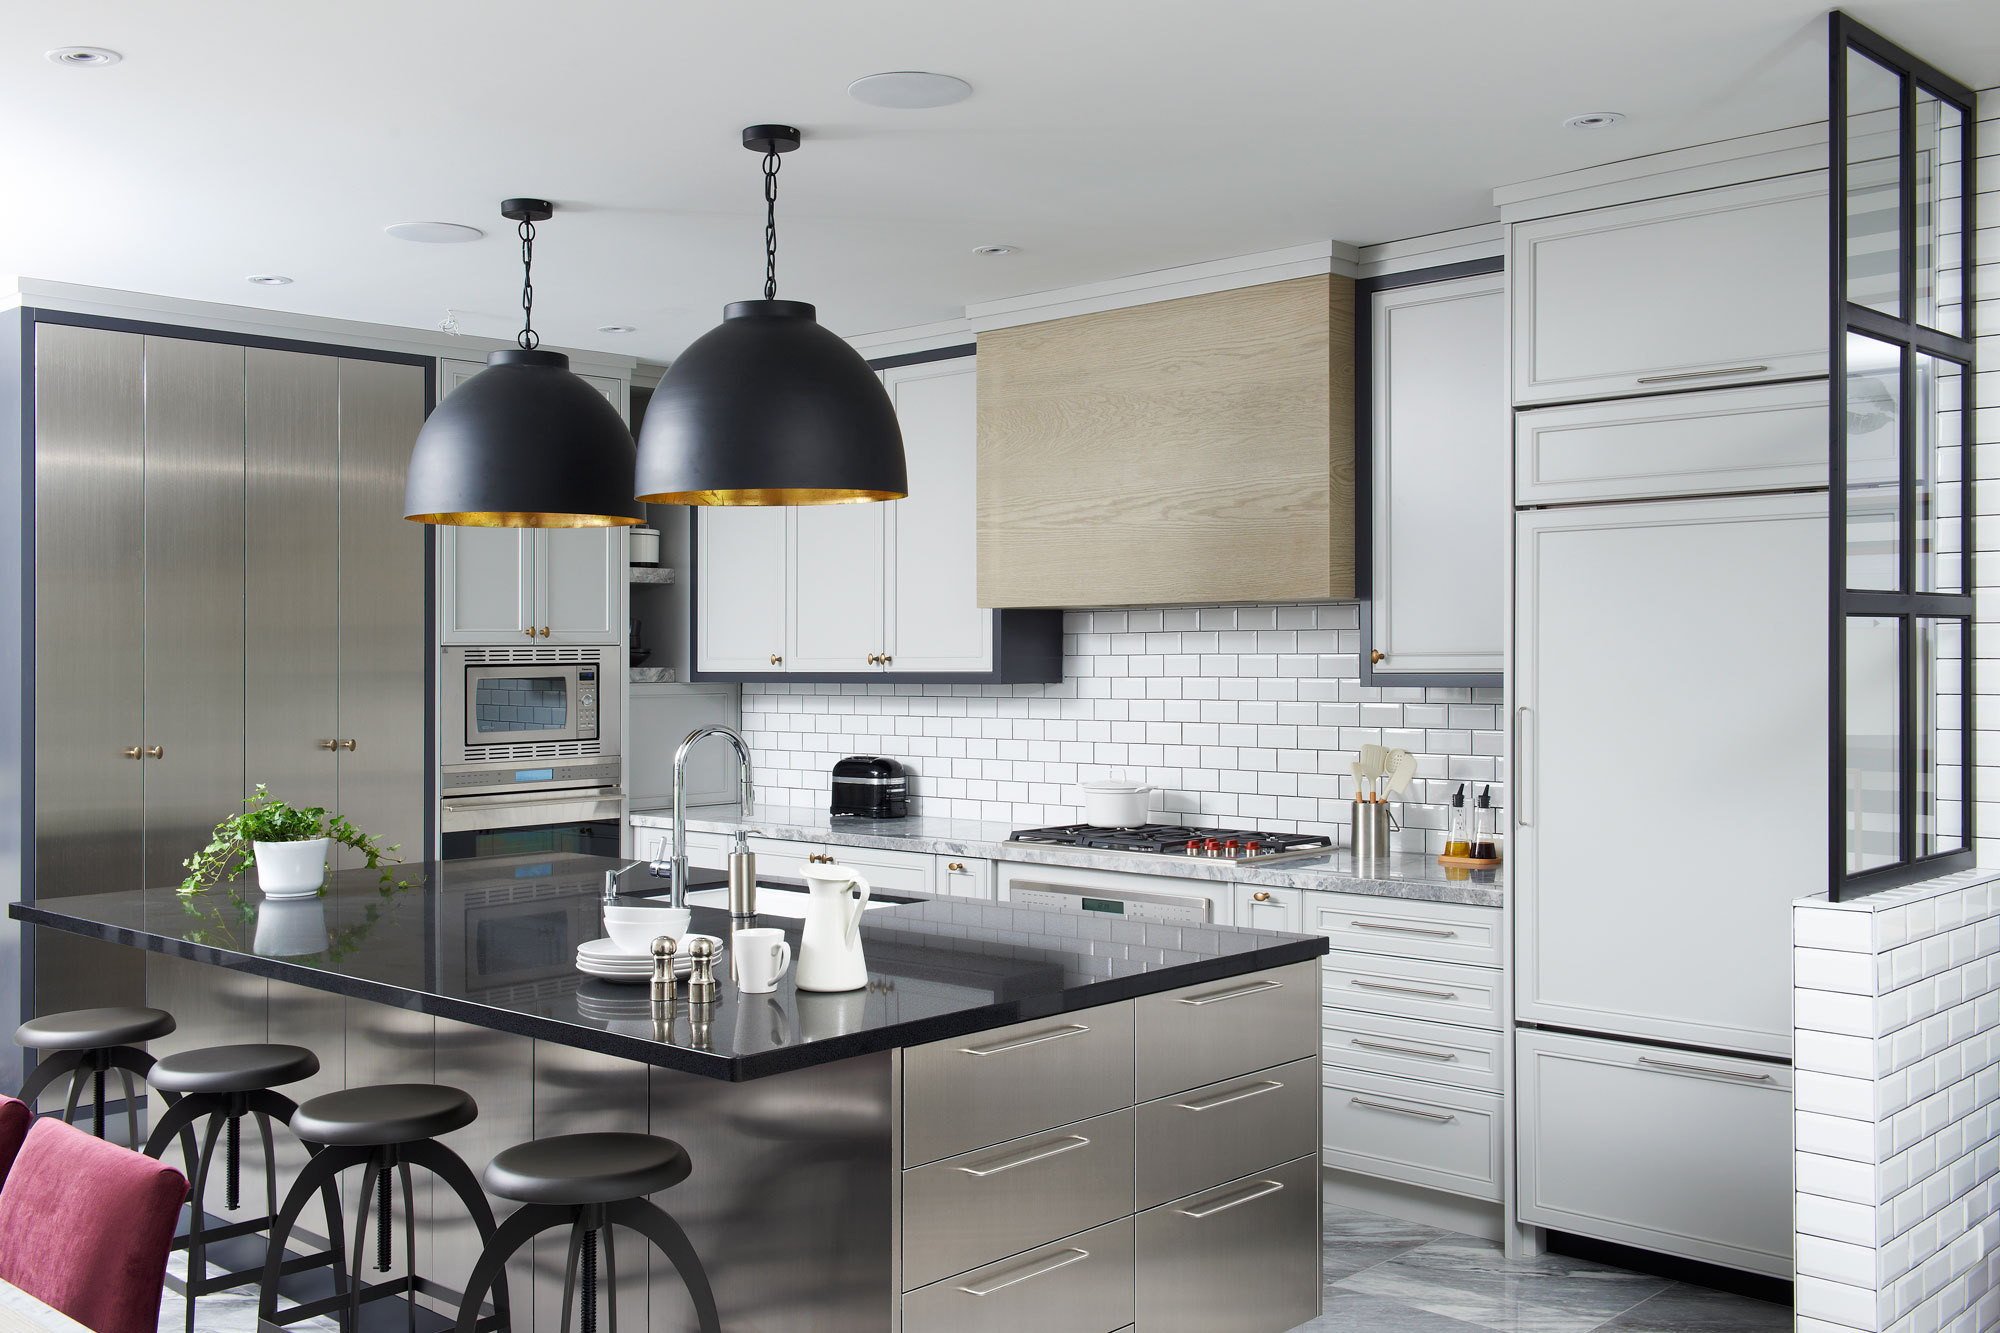 Designer Stacey Cohen installed functional stainless-steel cabinetry in the kitchen of a gut-renovated three-bedroom home in Toronto. Photography by Kevin Sparkman.